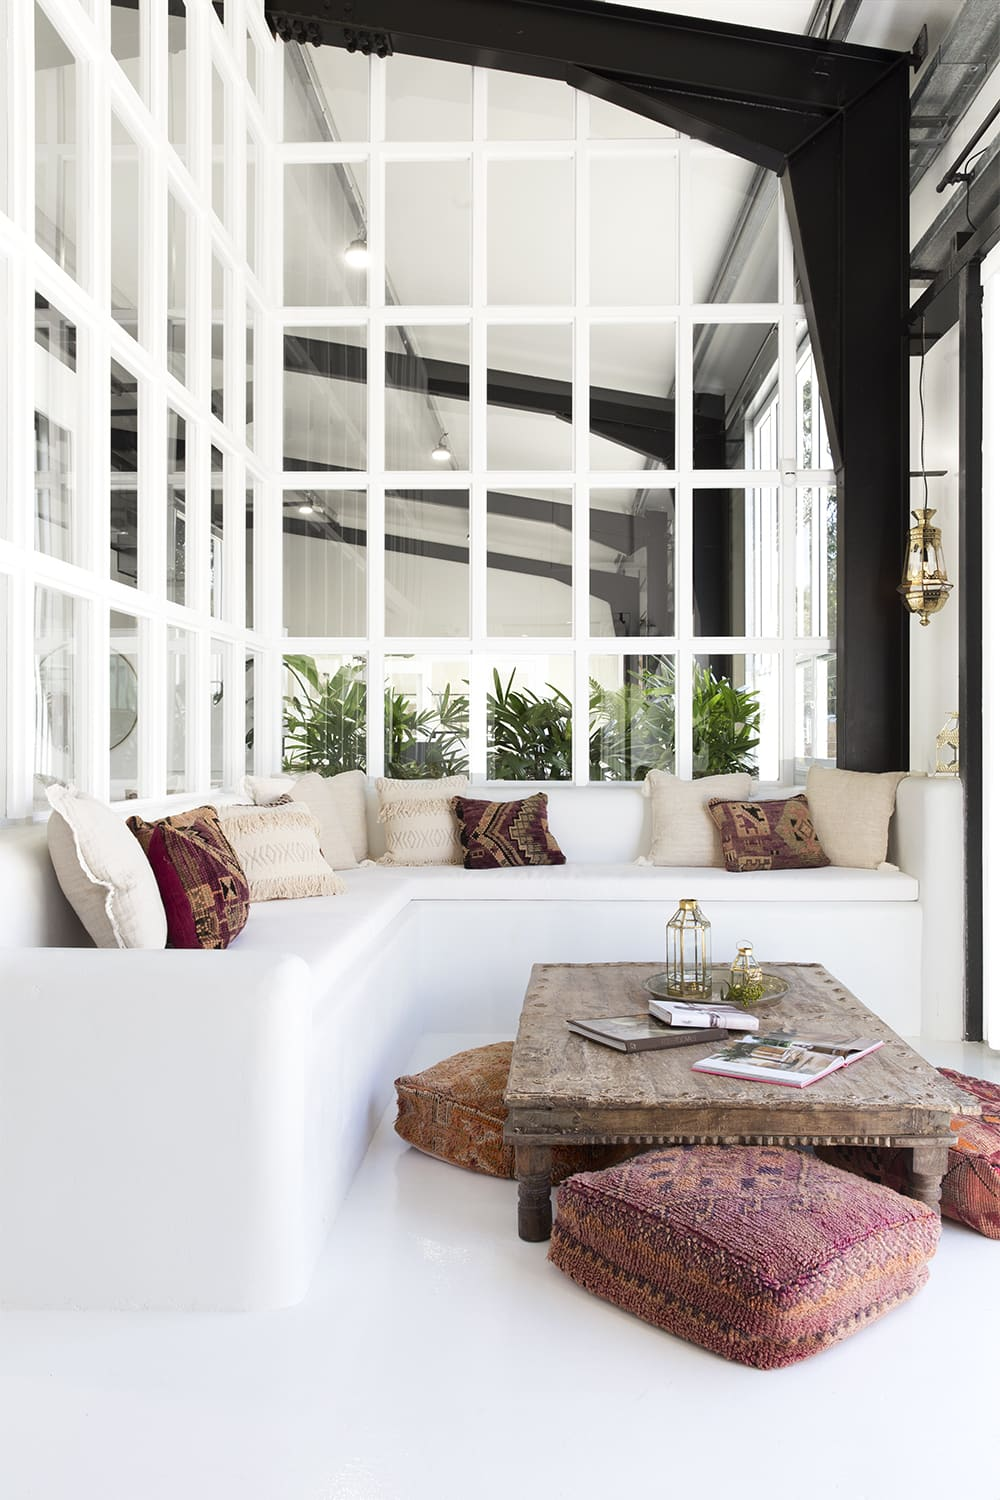 a-bright-boho-seating-area-at-the-offices-of-spell-and-gypsy-tour-on-coco-kelley.jpg